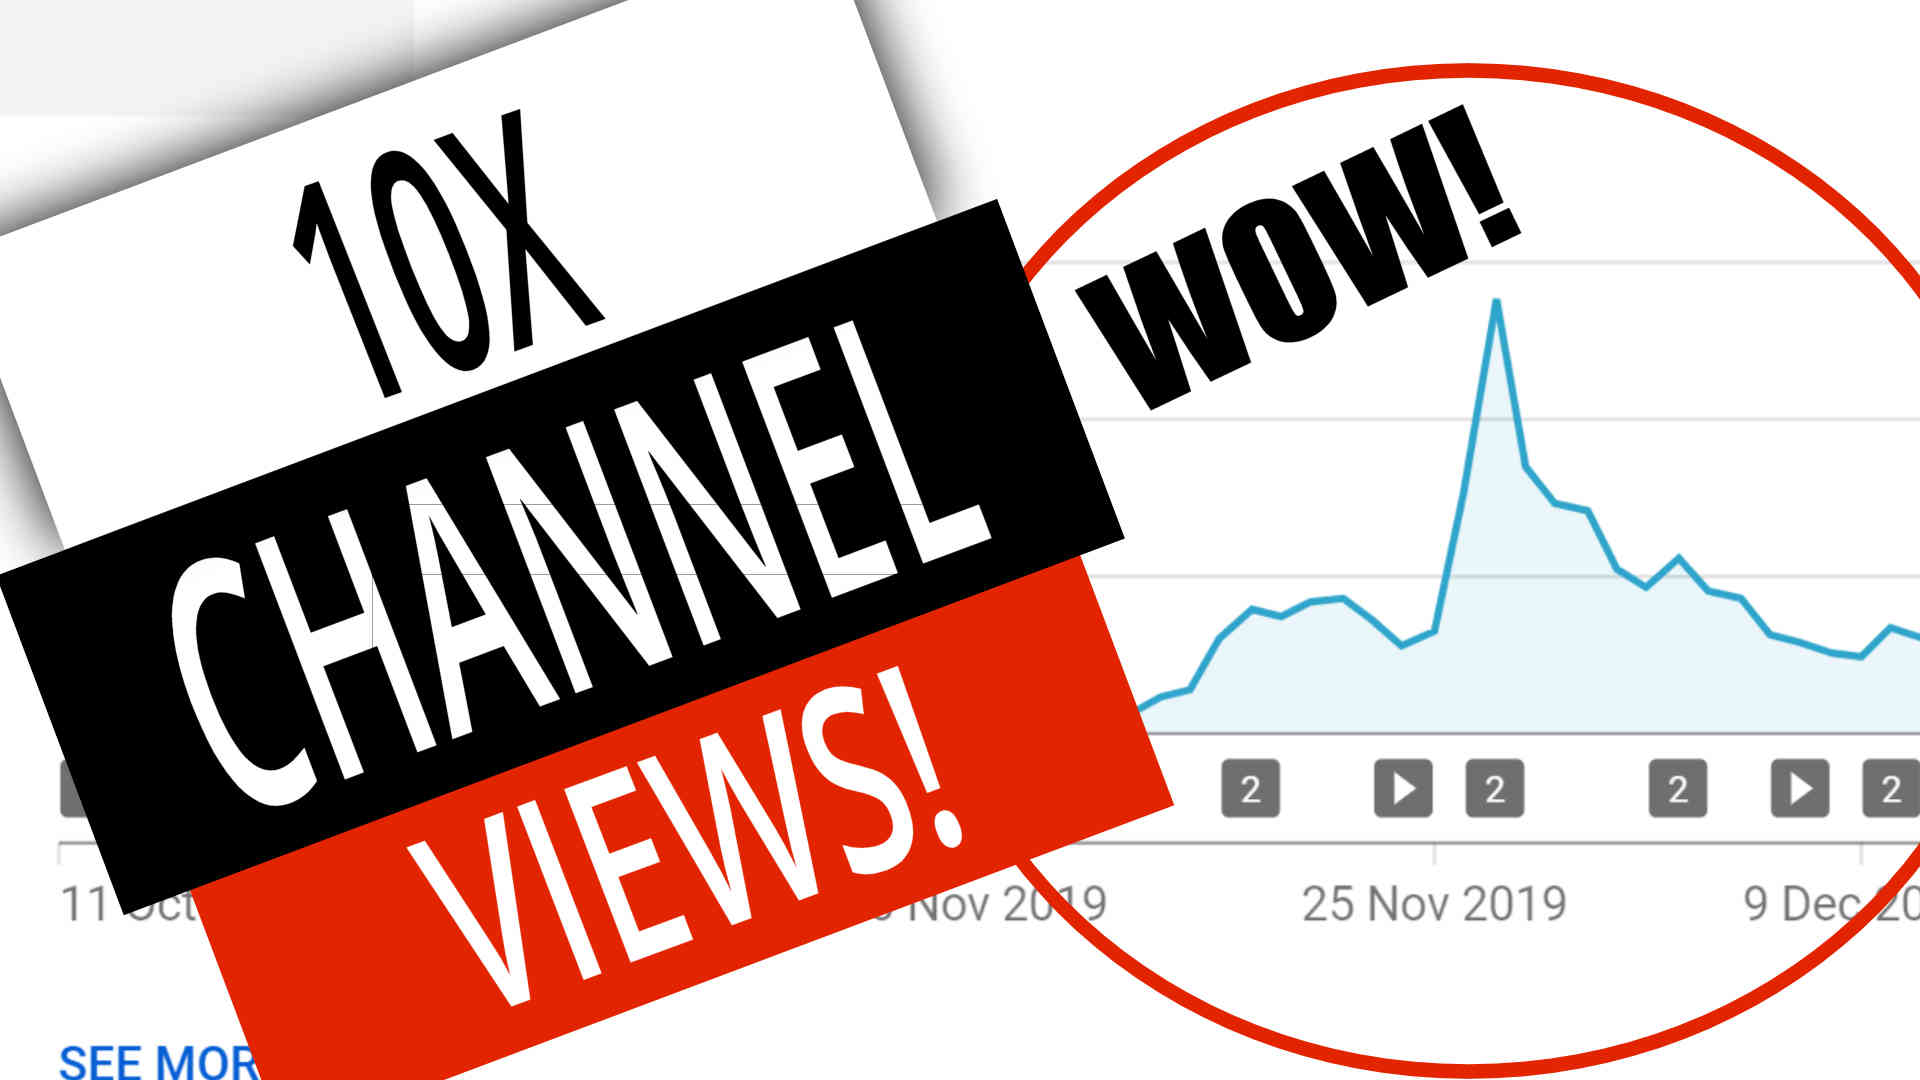 10X Your Channel Views with TRENDING TOPICS (with PROOF), alan spicer,alanspicer,how to get more views on youtube,how to get views on youtube,grow your youtube channel,how to get more views,grow a youtube channel,get more views,get more views on youtube,get views on youtube,get more views on youtube videos,how to get more views on youtube 2020,trending topics,get more views with trends,10x your channel views,10x your channel growth,how to get trending topics,katie price,katie price bankrupt,katie price bankruptcy